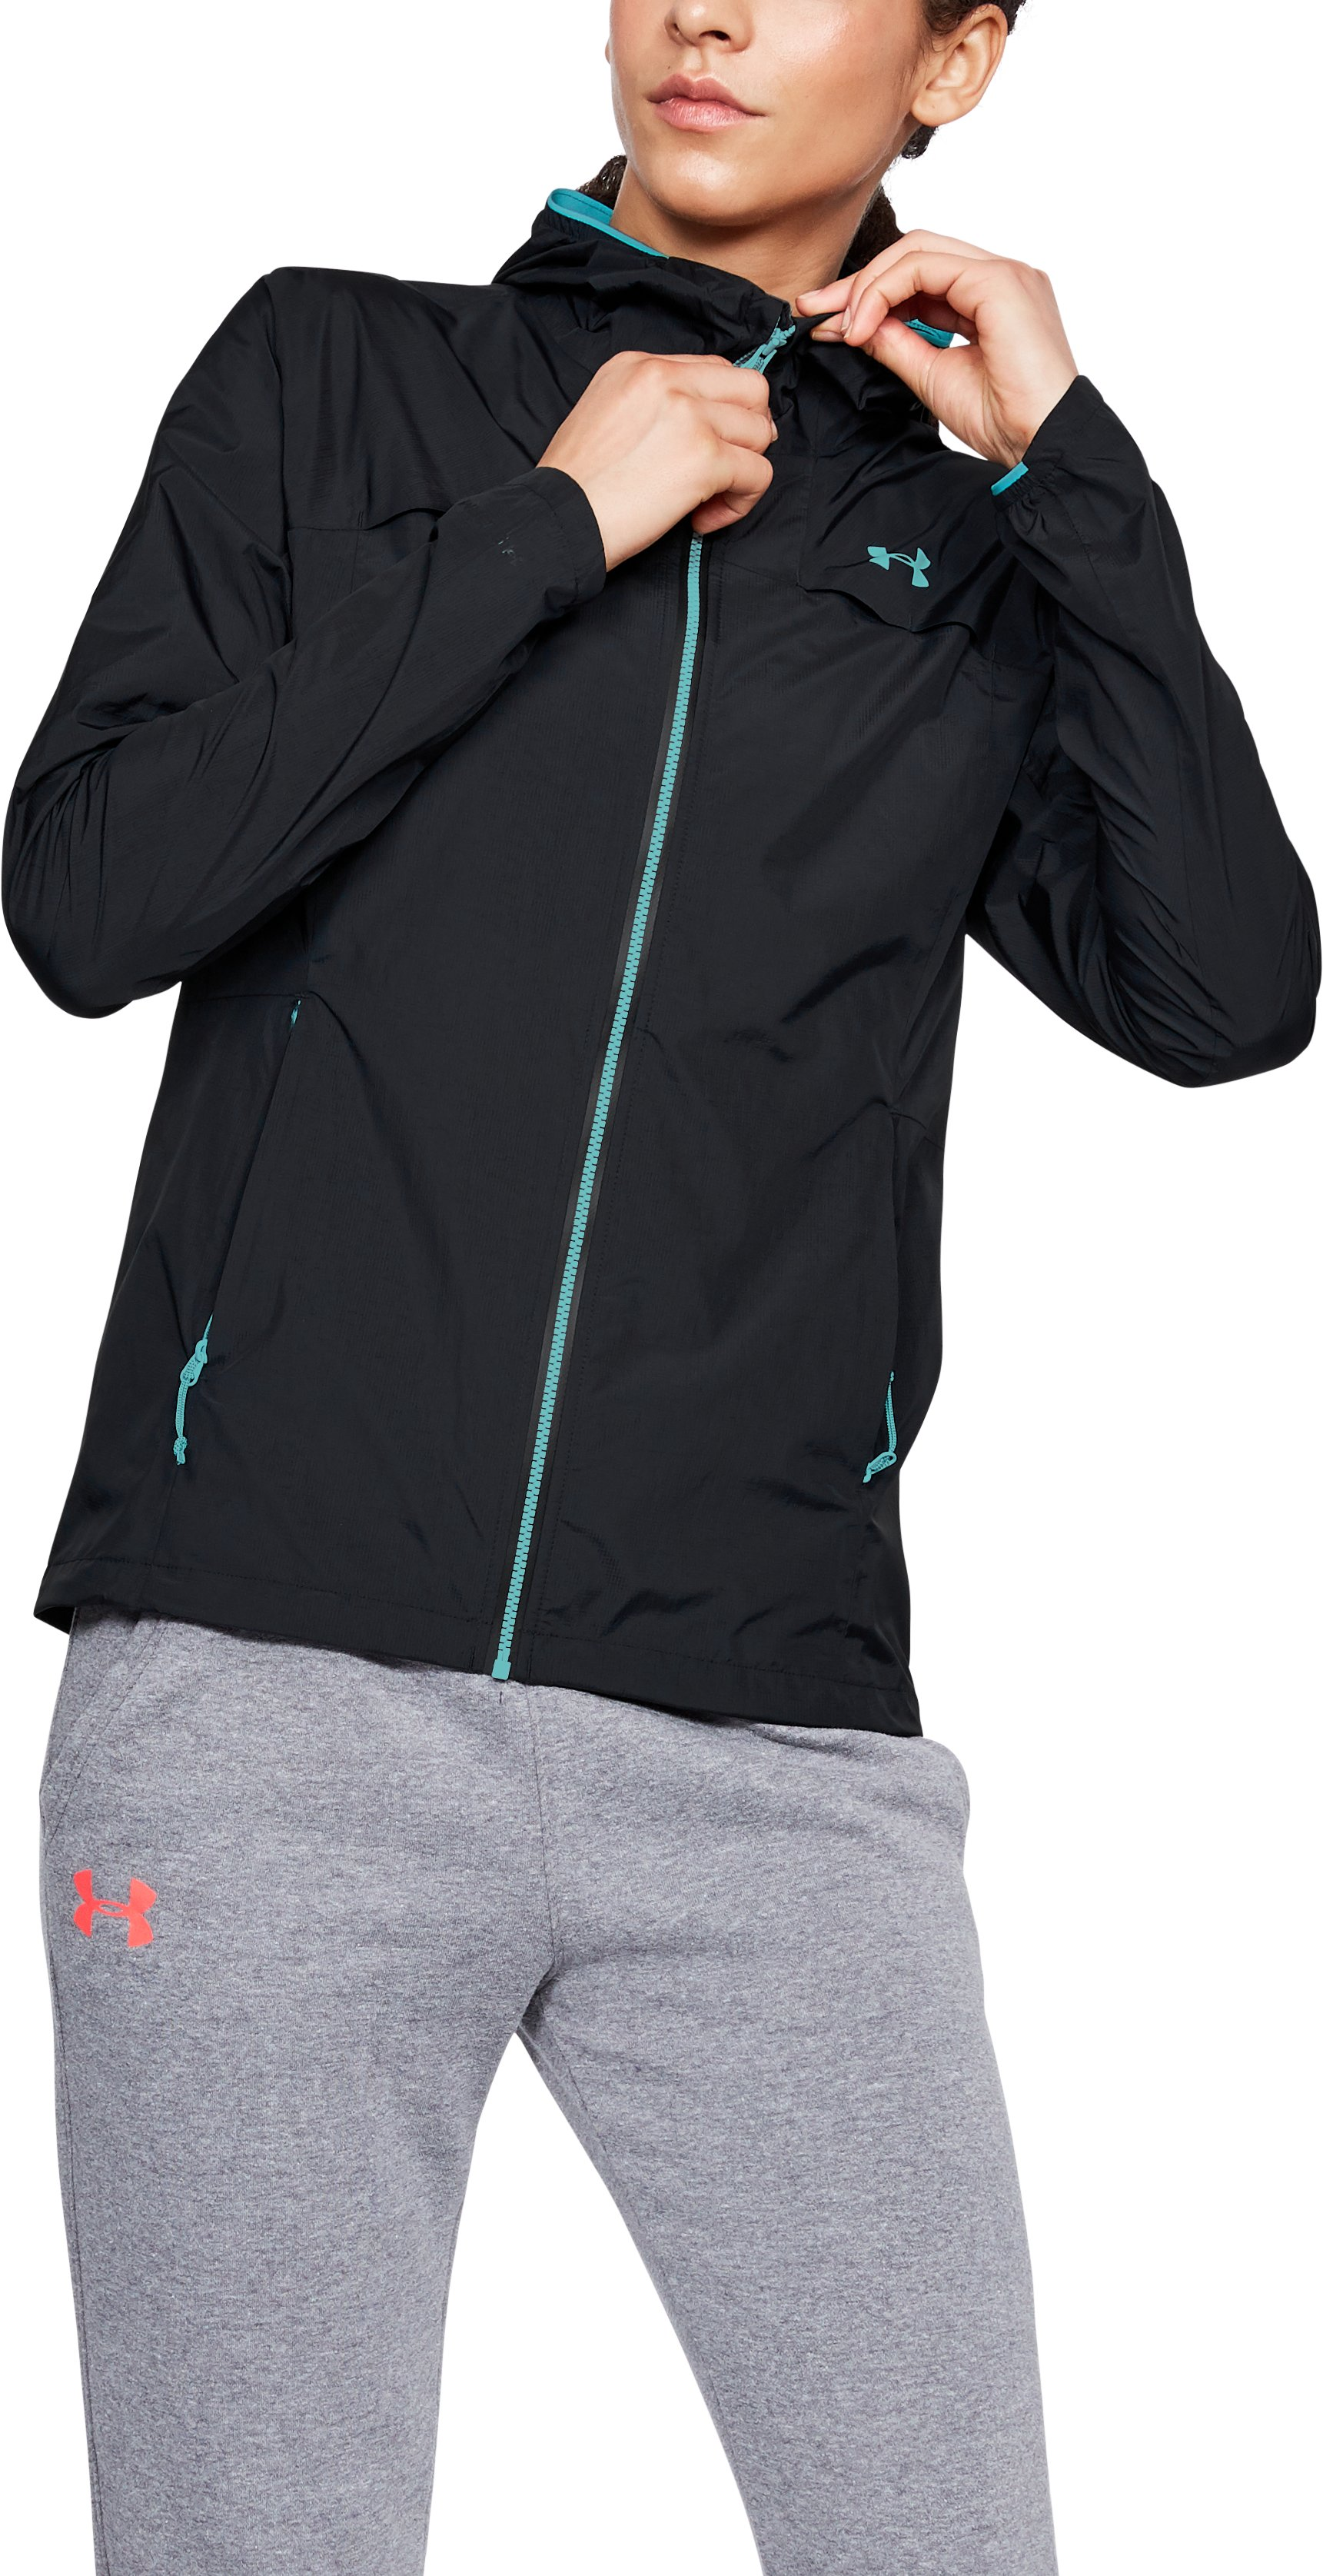 Women's UA Scrambler Jacket 3 Colors $80.00 - $96.00